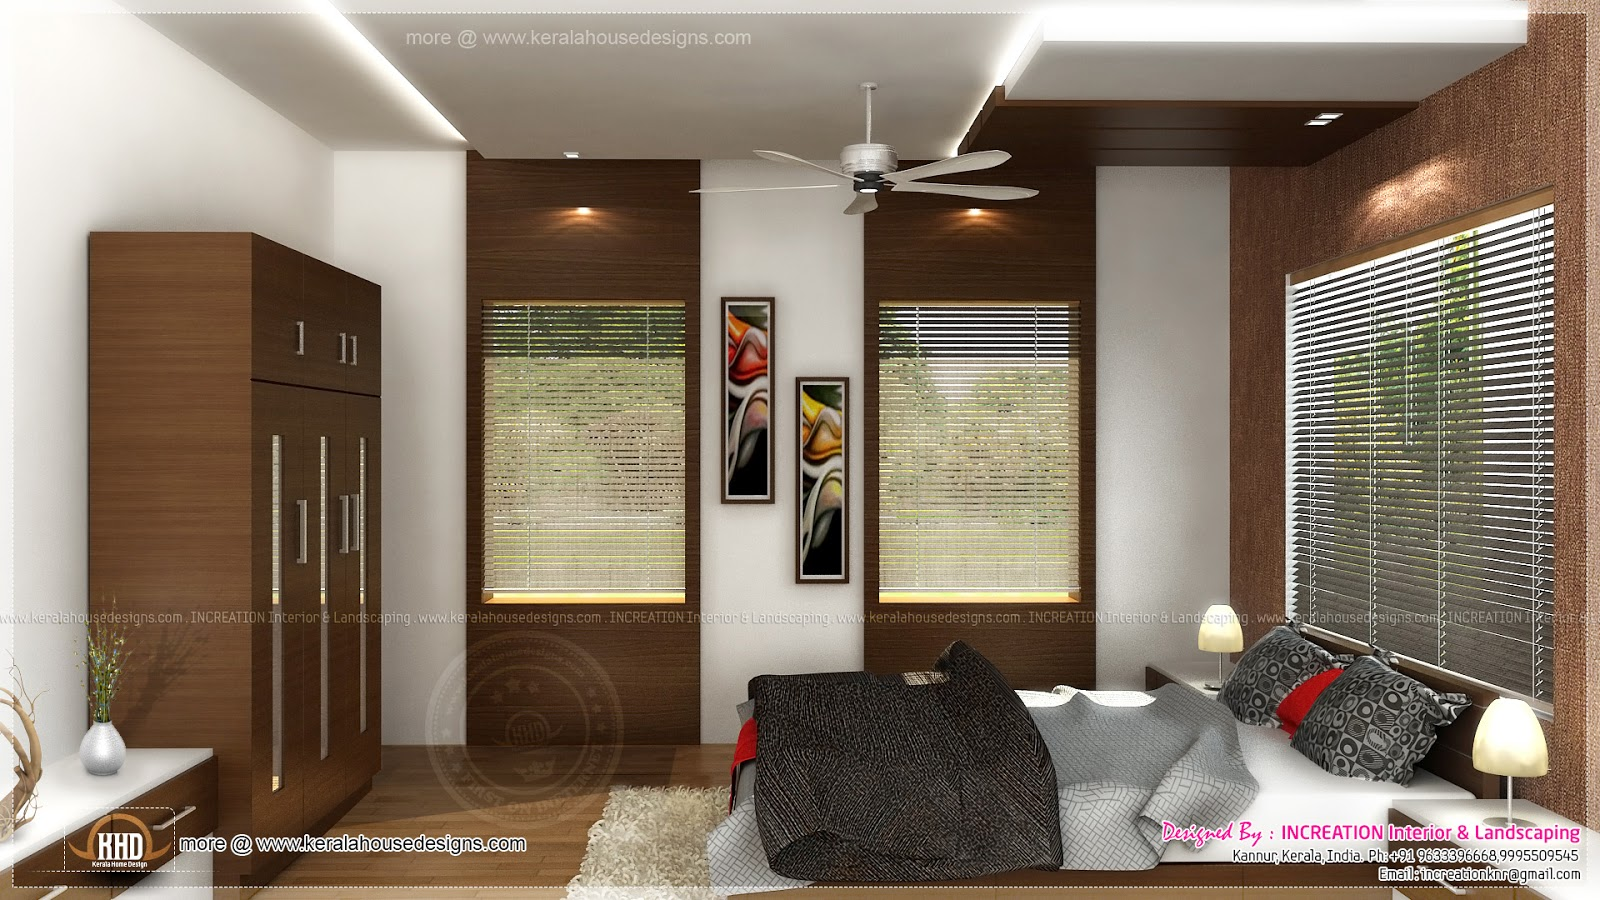 Interior designs from kannur kerala home kerala plans for Interior designers in my area